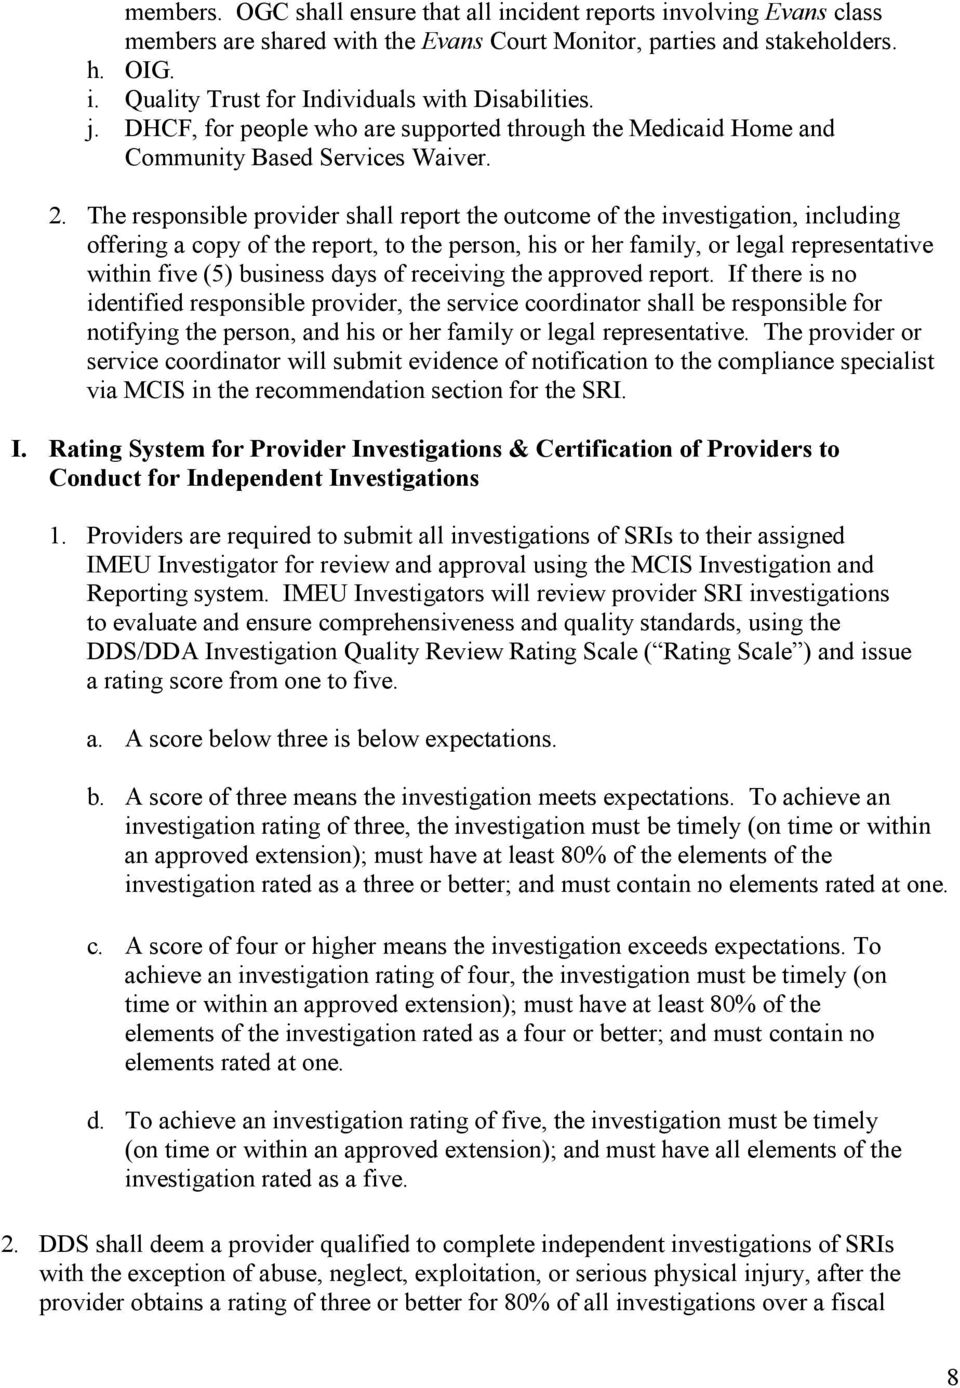 The responsible provider shall report the outcome of the investigation, including offering a copy of the report, to the person, his or her family, or legal representative within five (5) business